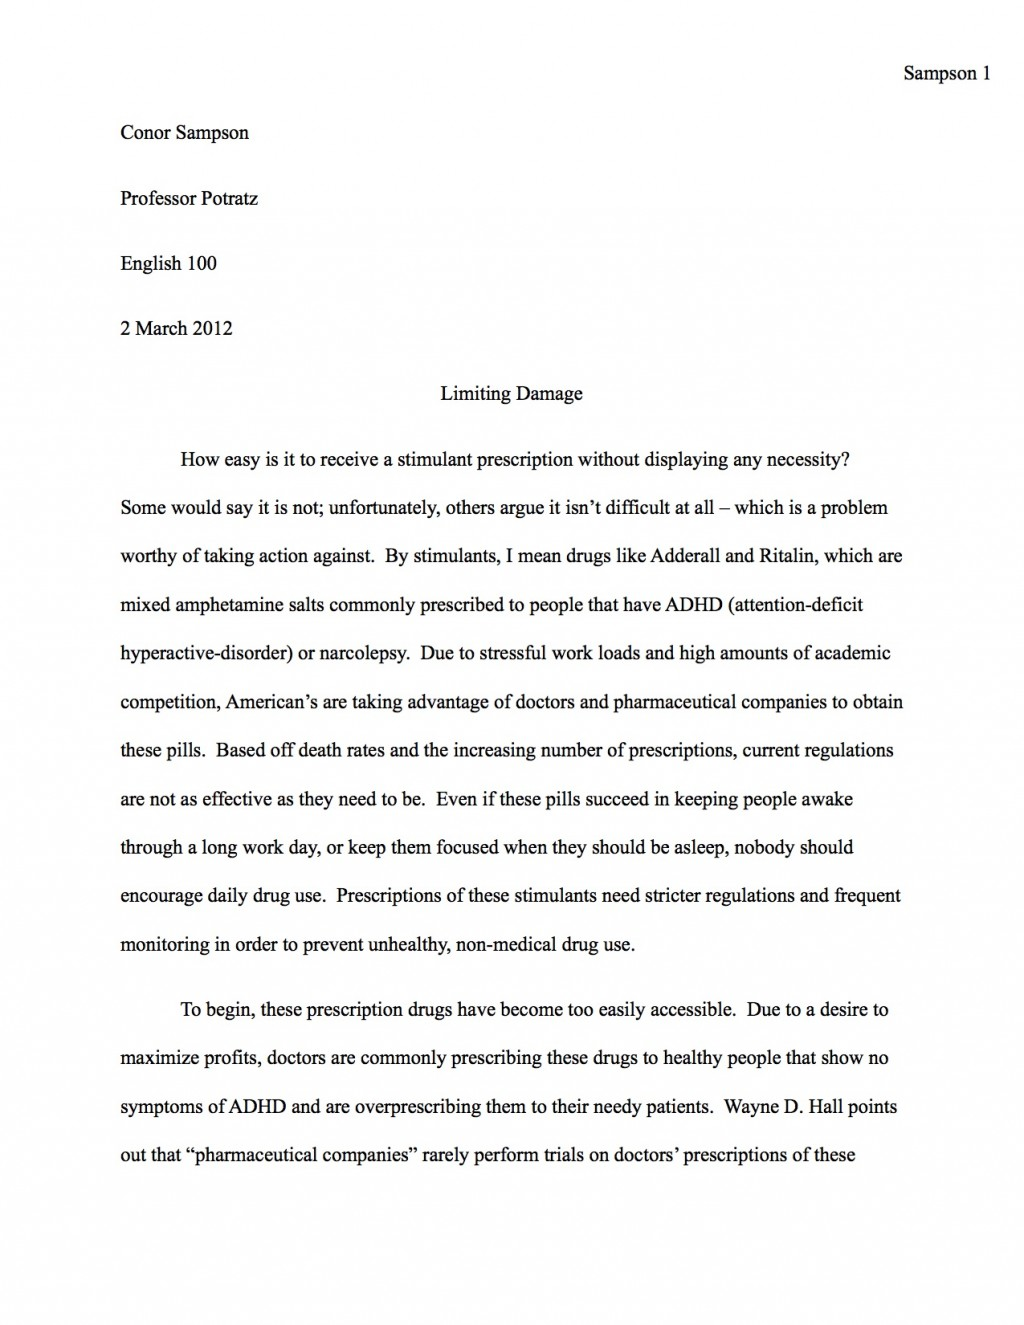 005 essay outlines outline of argumentative sample formal position